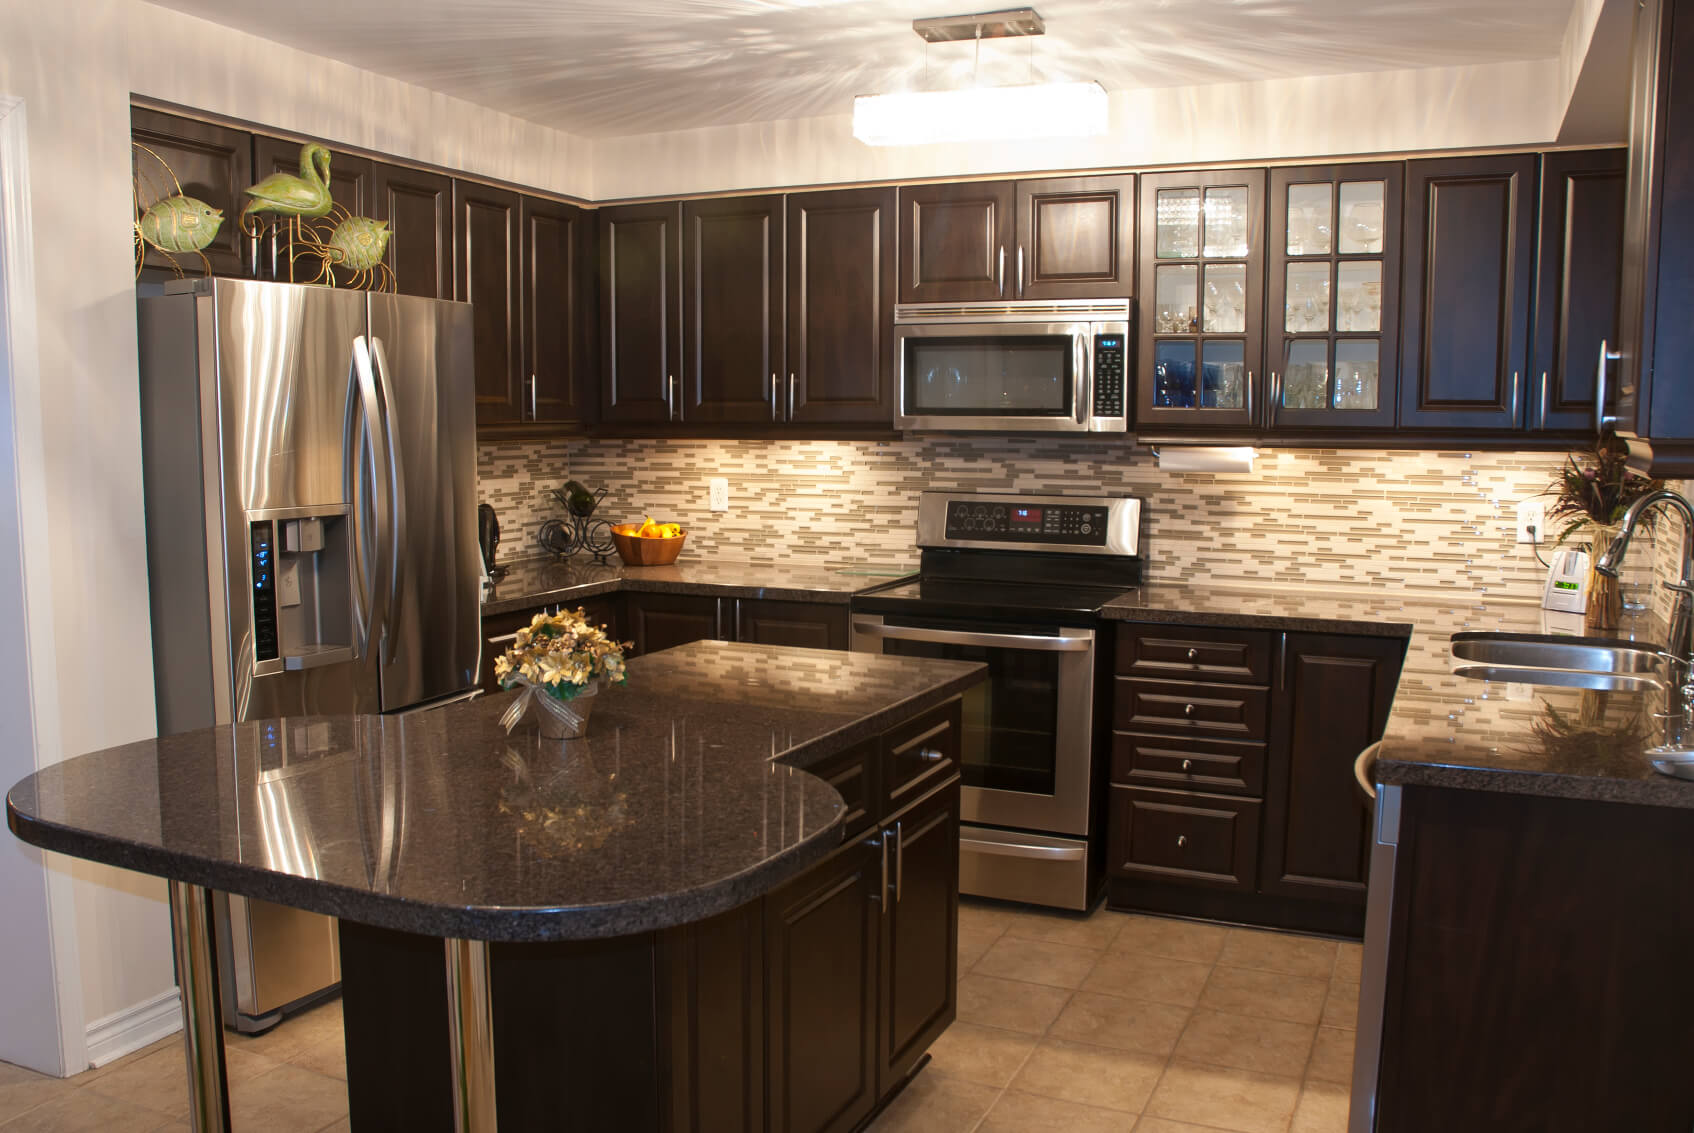 dark kitchen cabinets kitchen cabinets and countertops Cozy kitchen is stuffed with dark wood cabinetry with brushed metal hardware Black marble